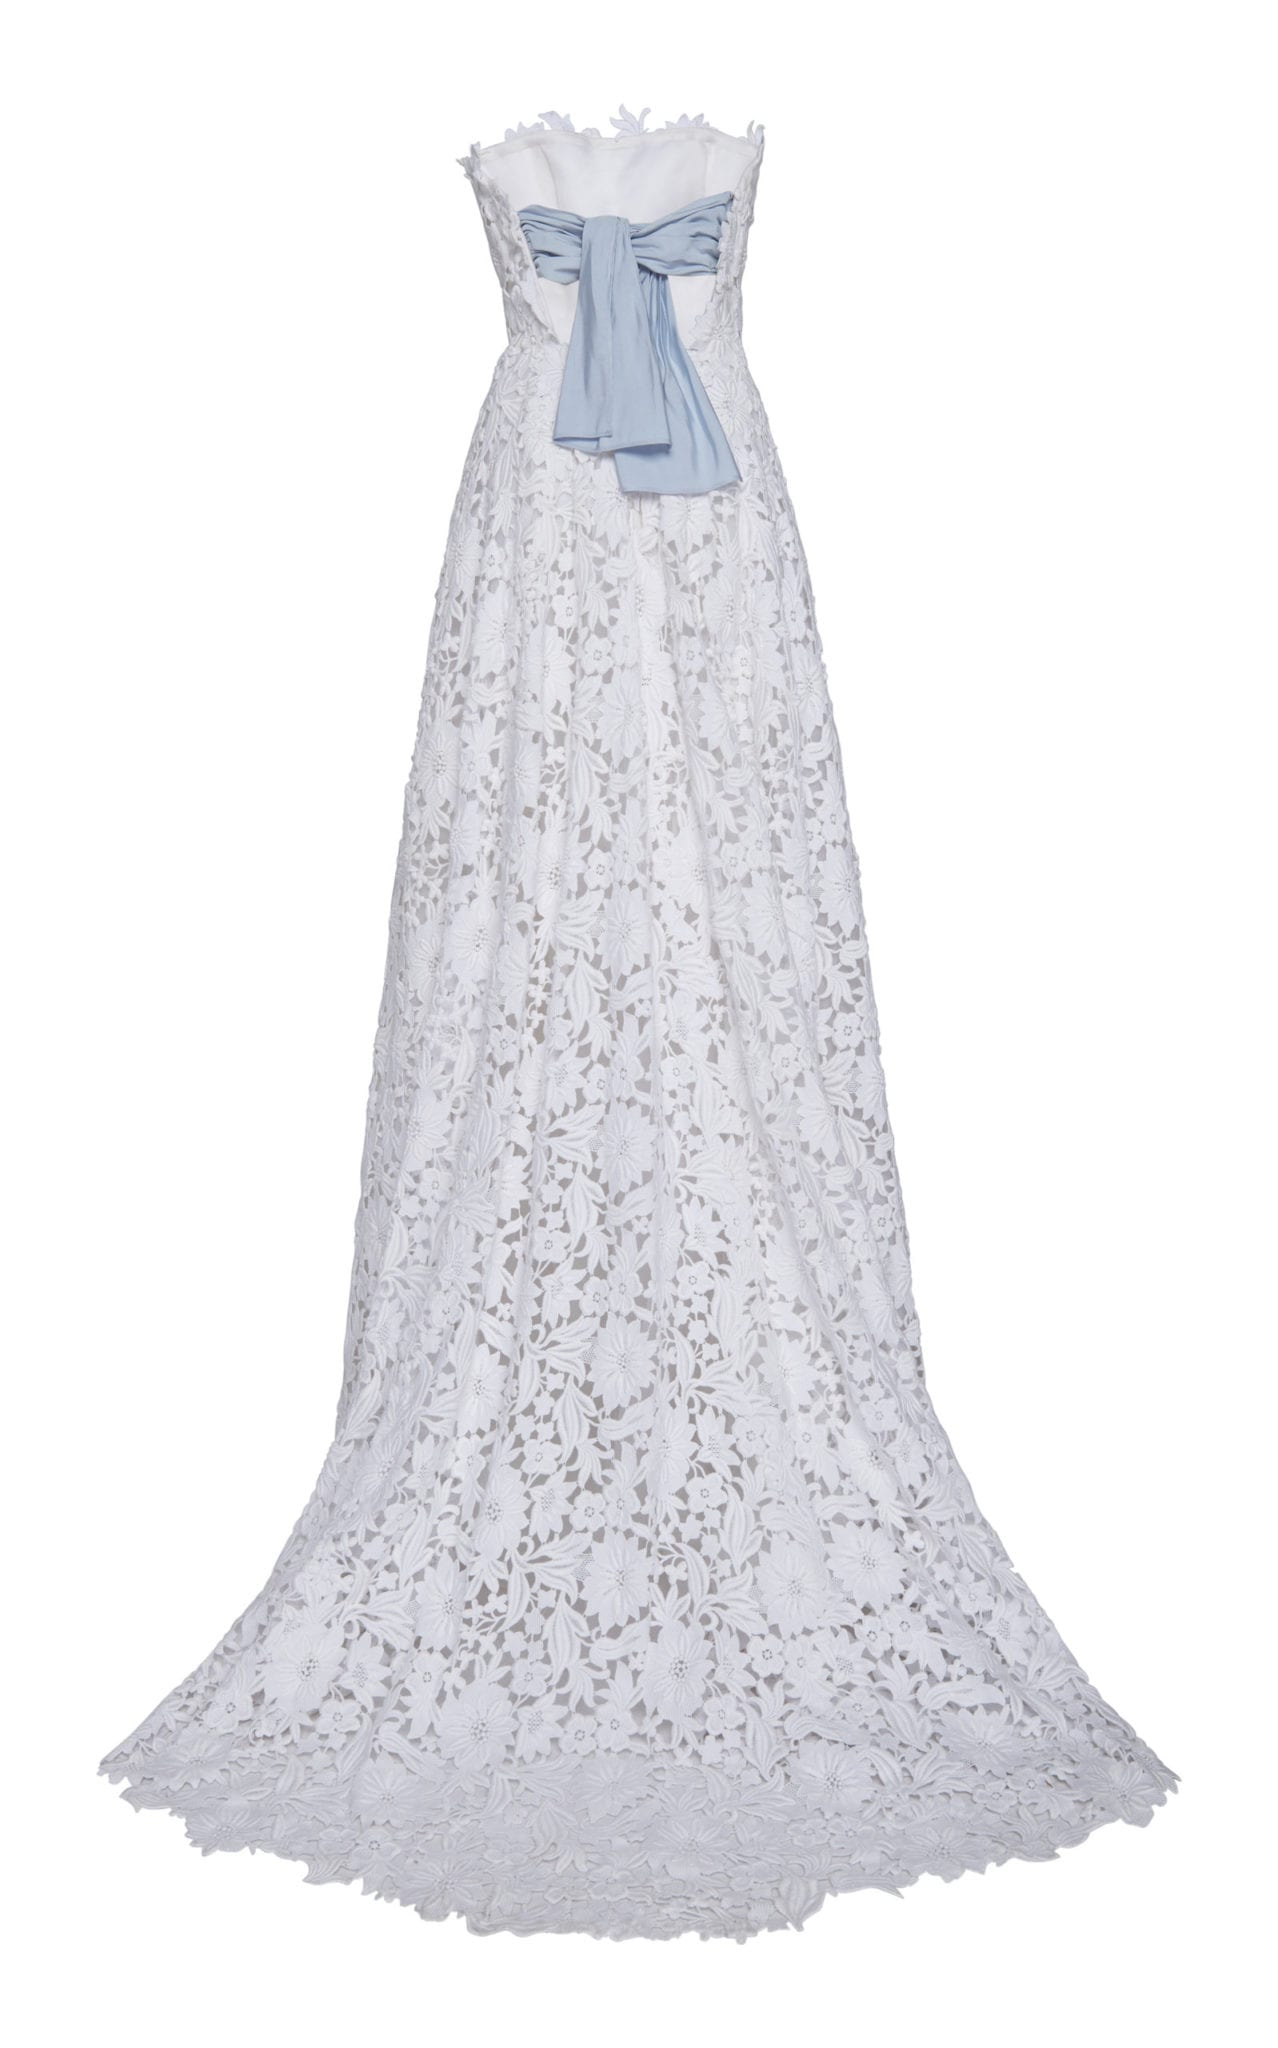 Carolina Herrera Bridal Gertrude Lace Strapless White Gown